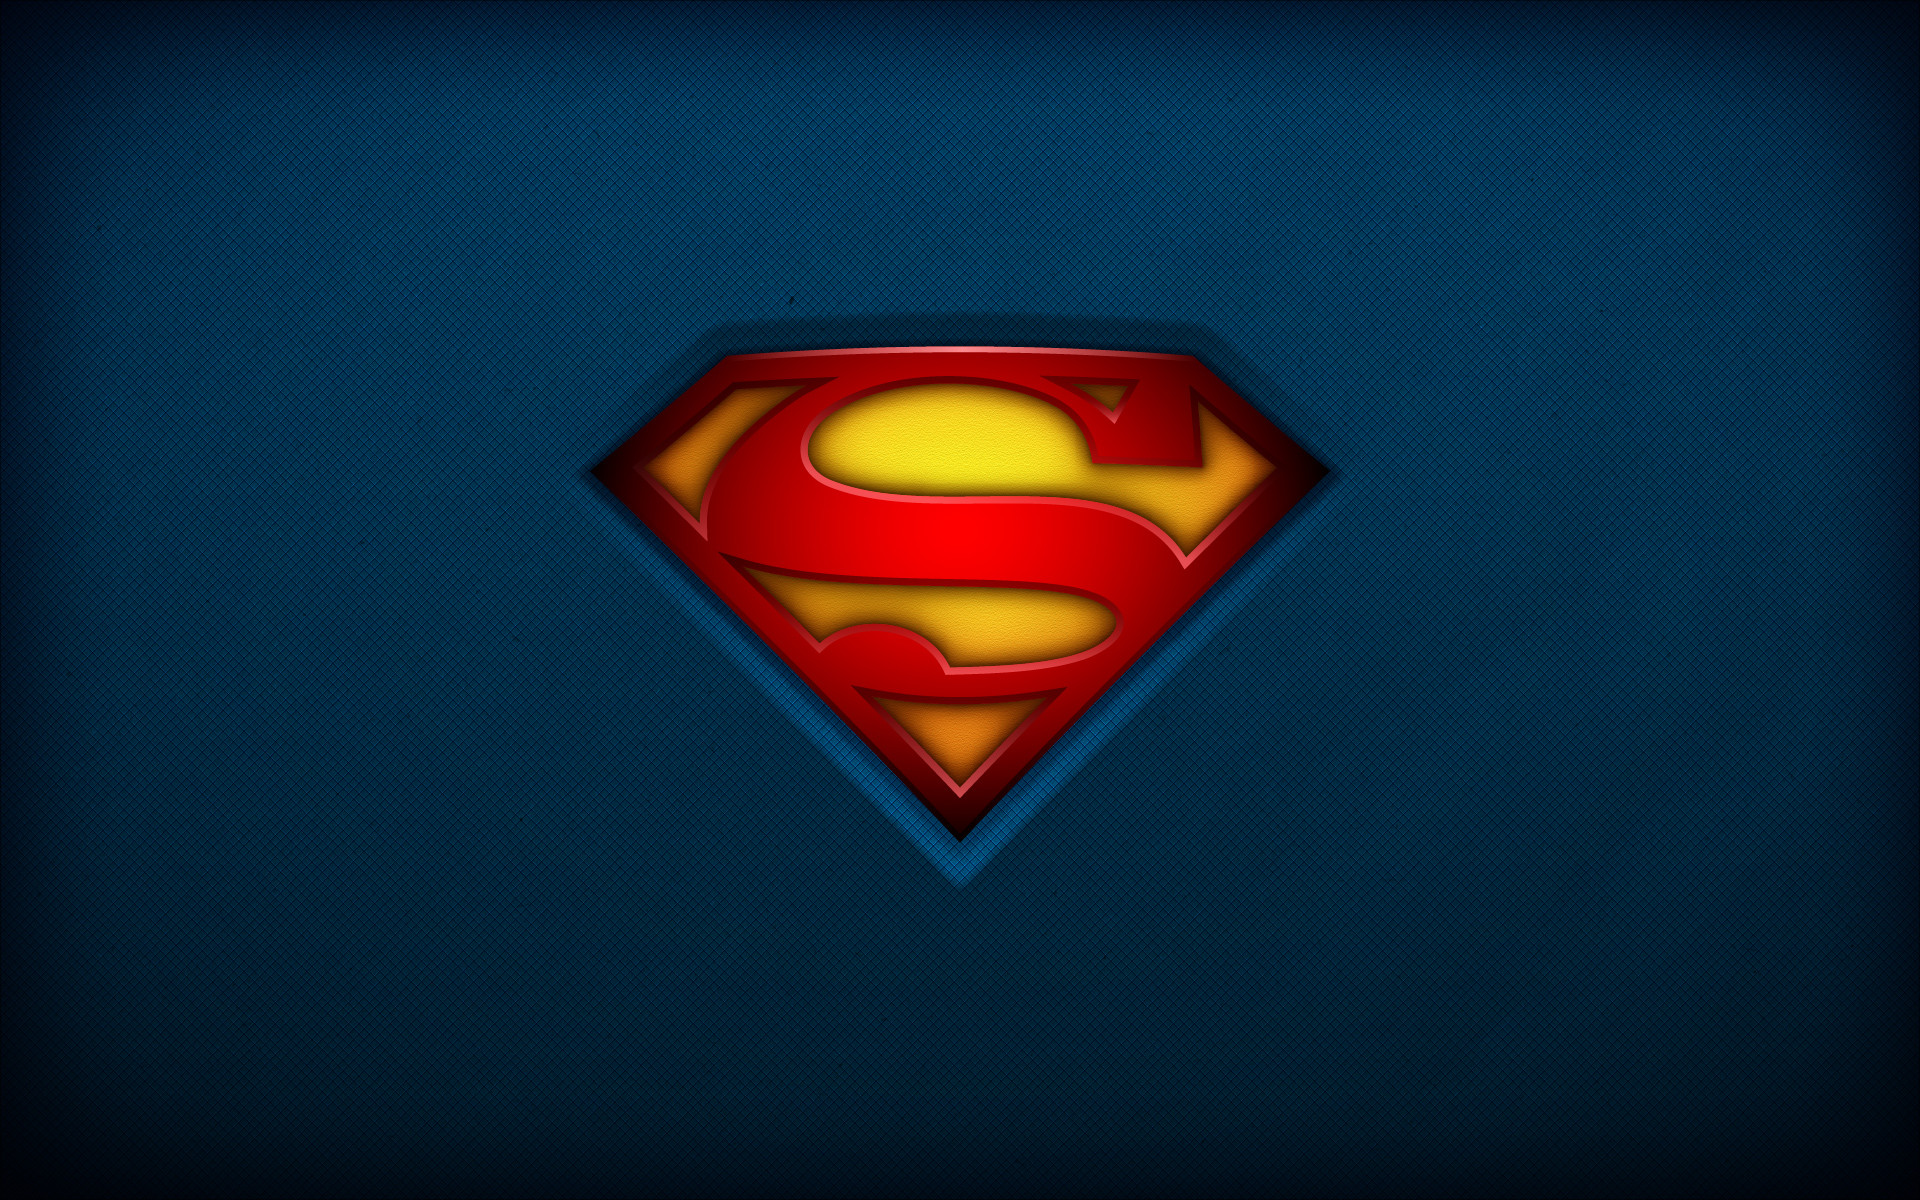 Superman screensavers and wallpaper 71 images - Superman screensaver ...